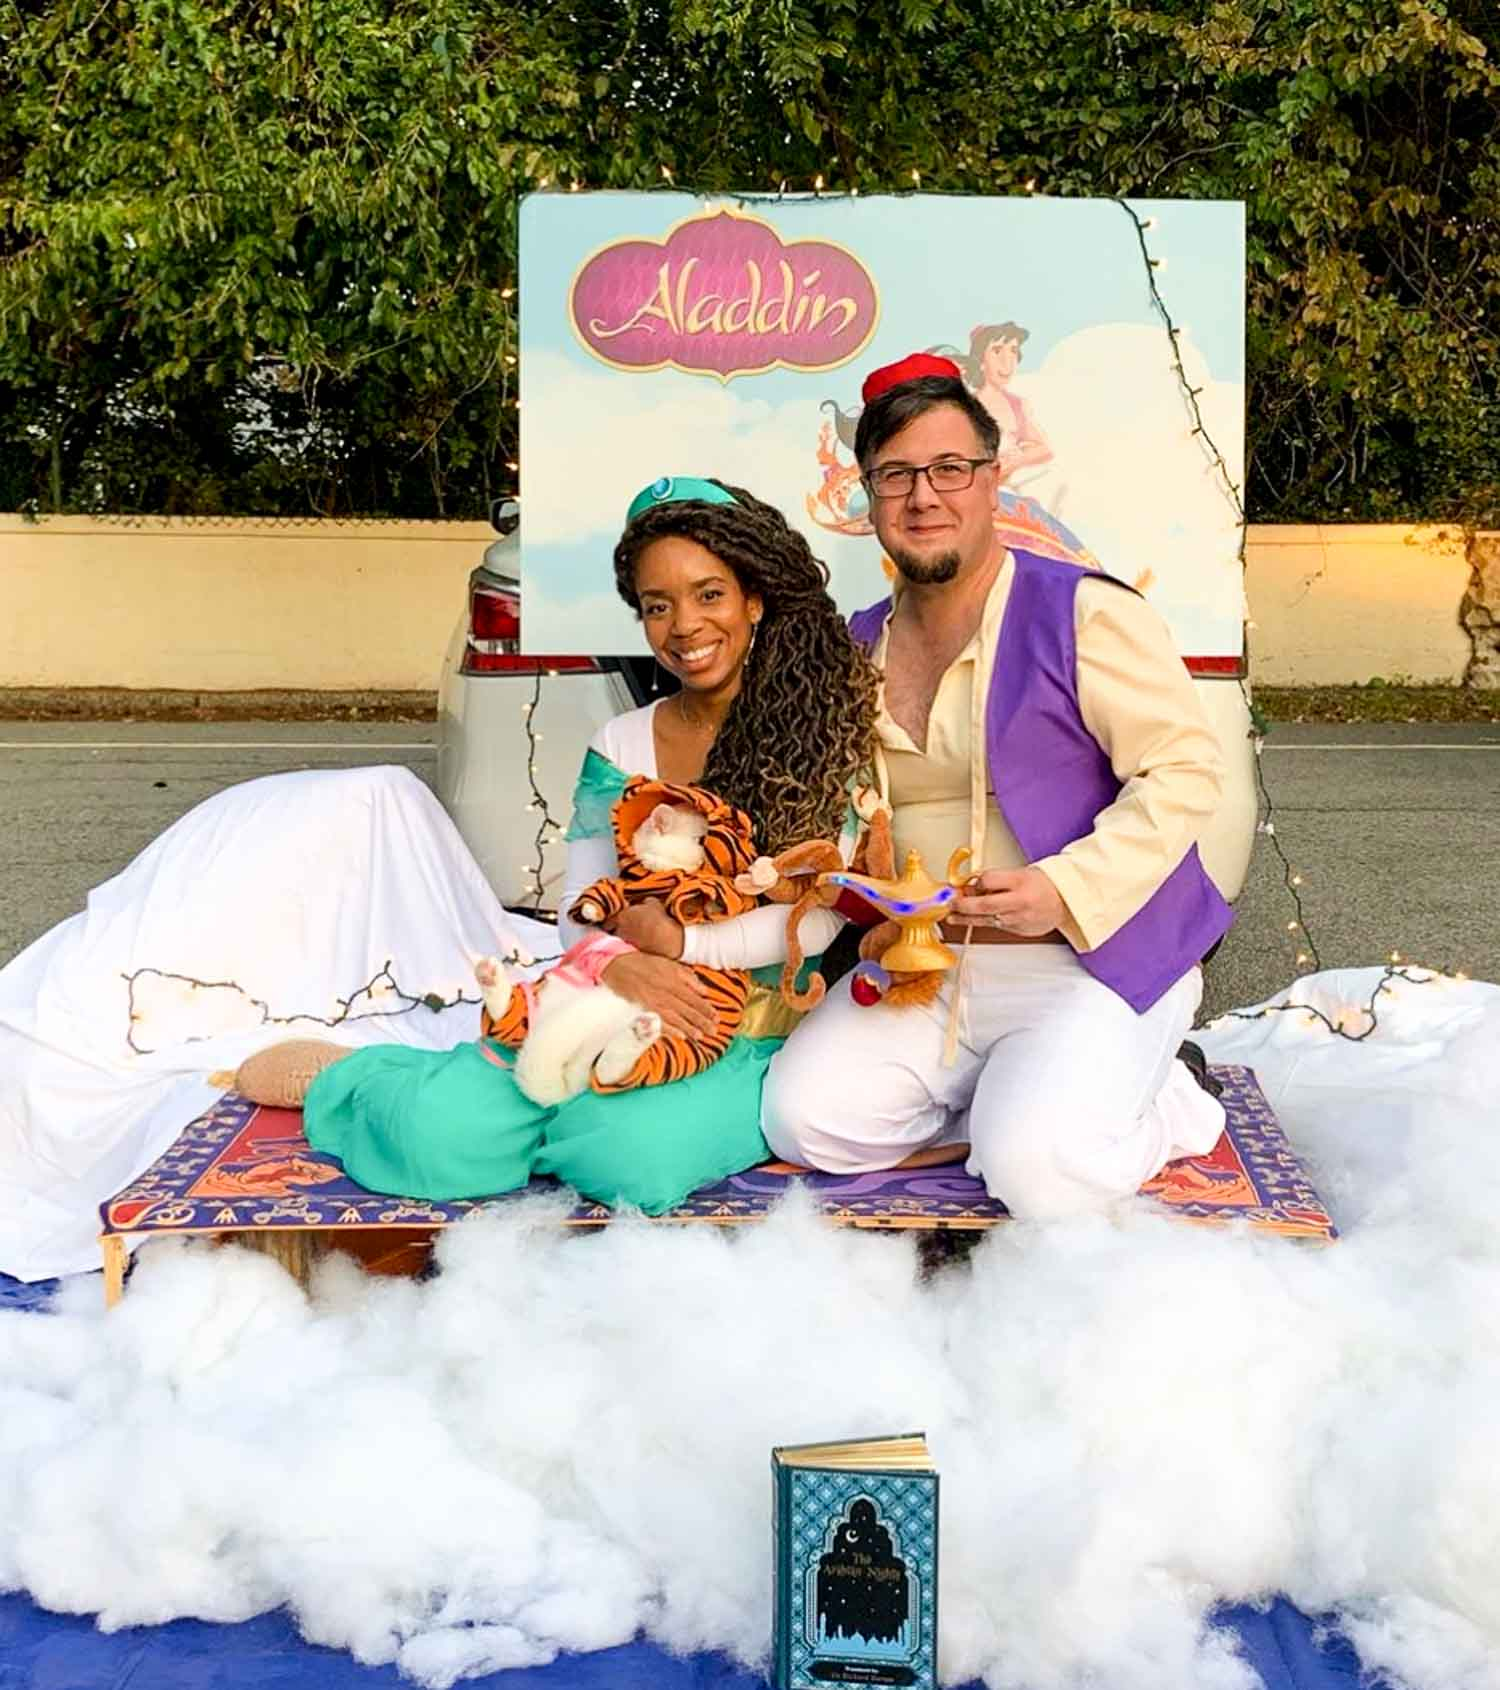 An Aladdin themed setting with people dressed up as characters sitting on a rug with clouds underneath them.